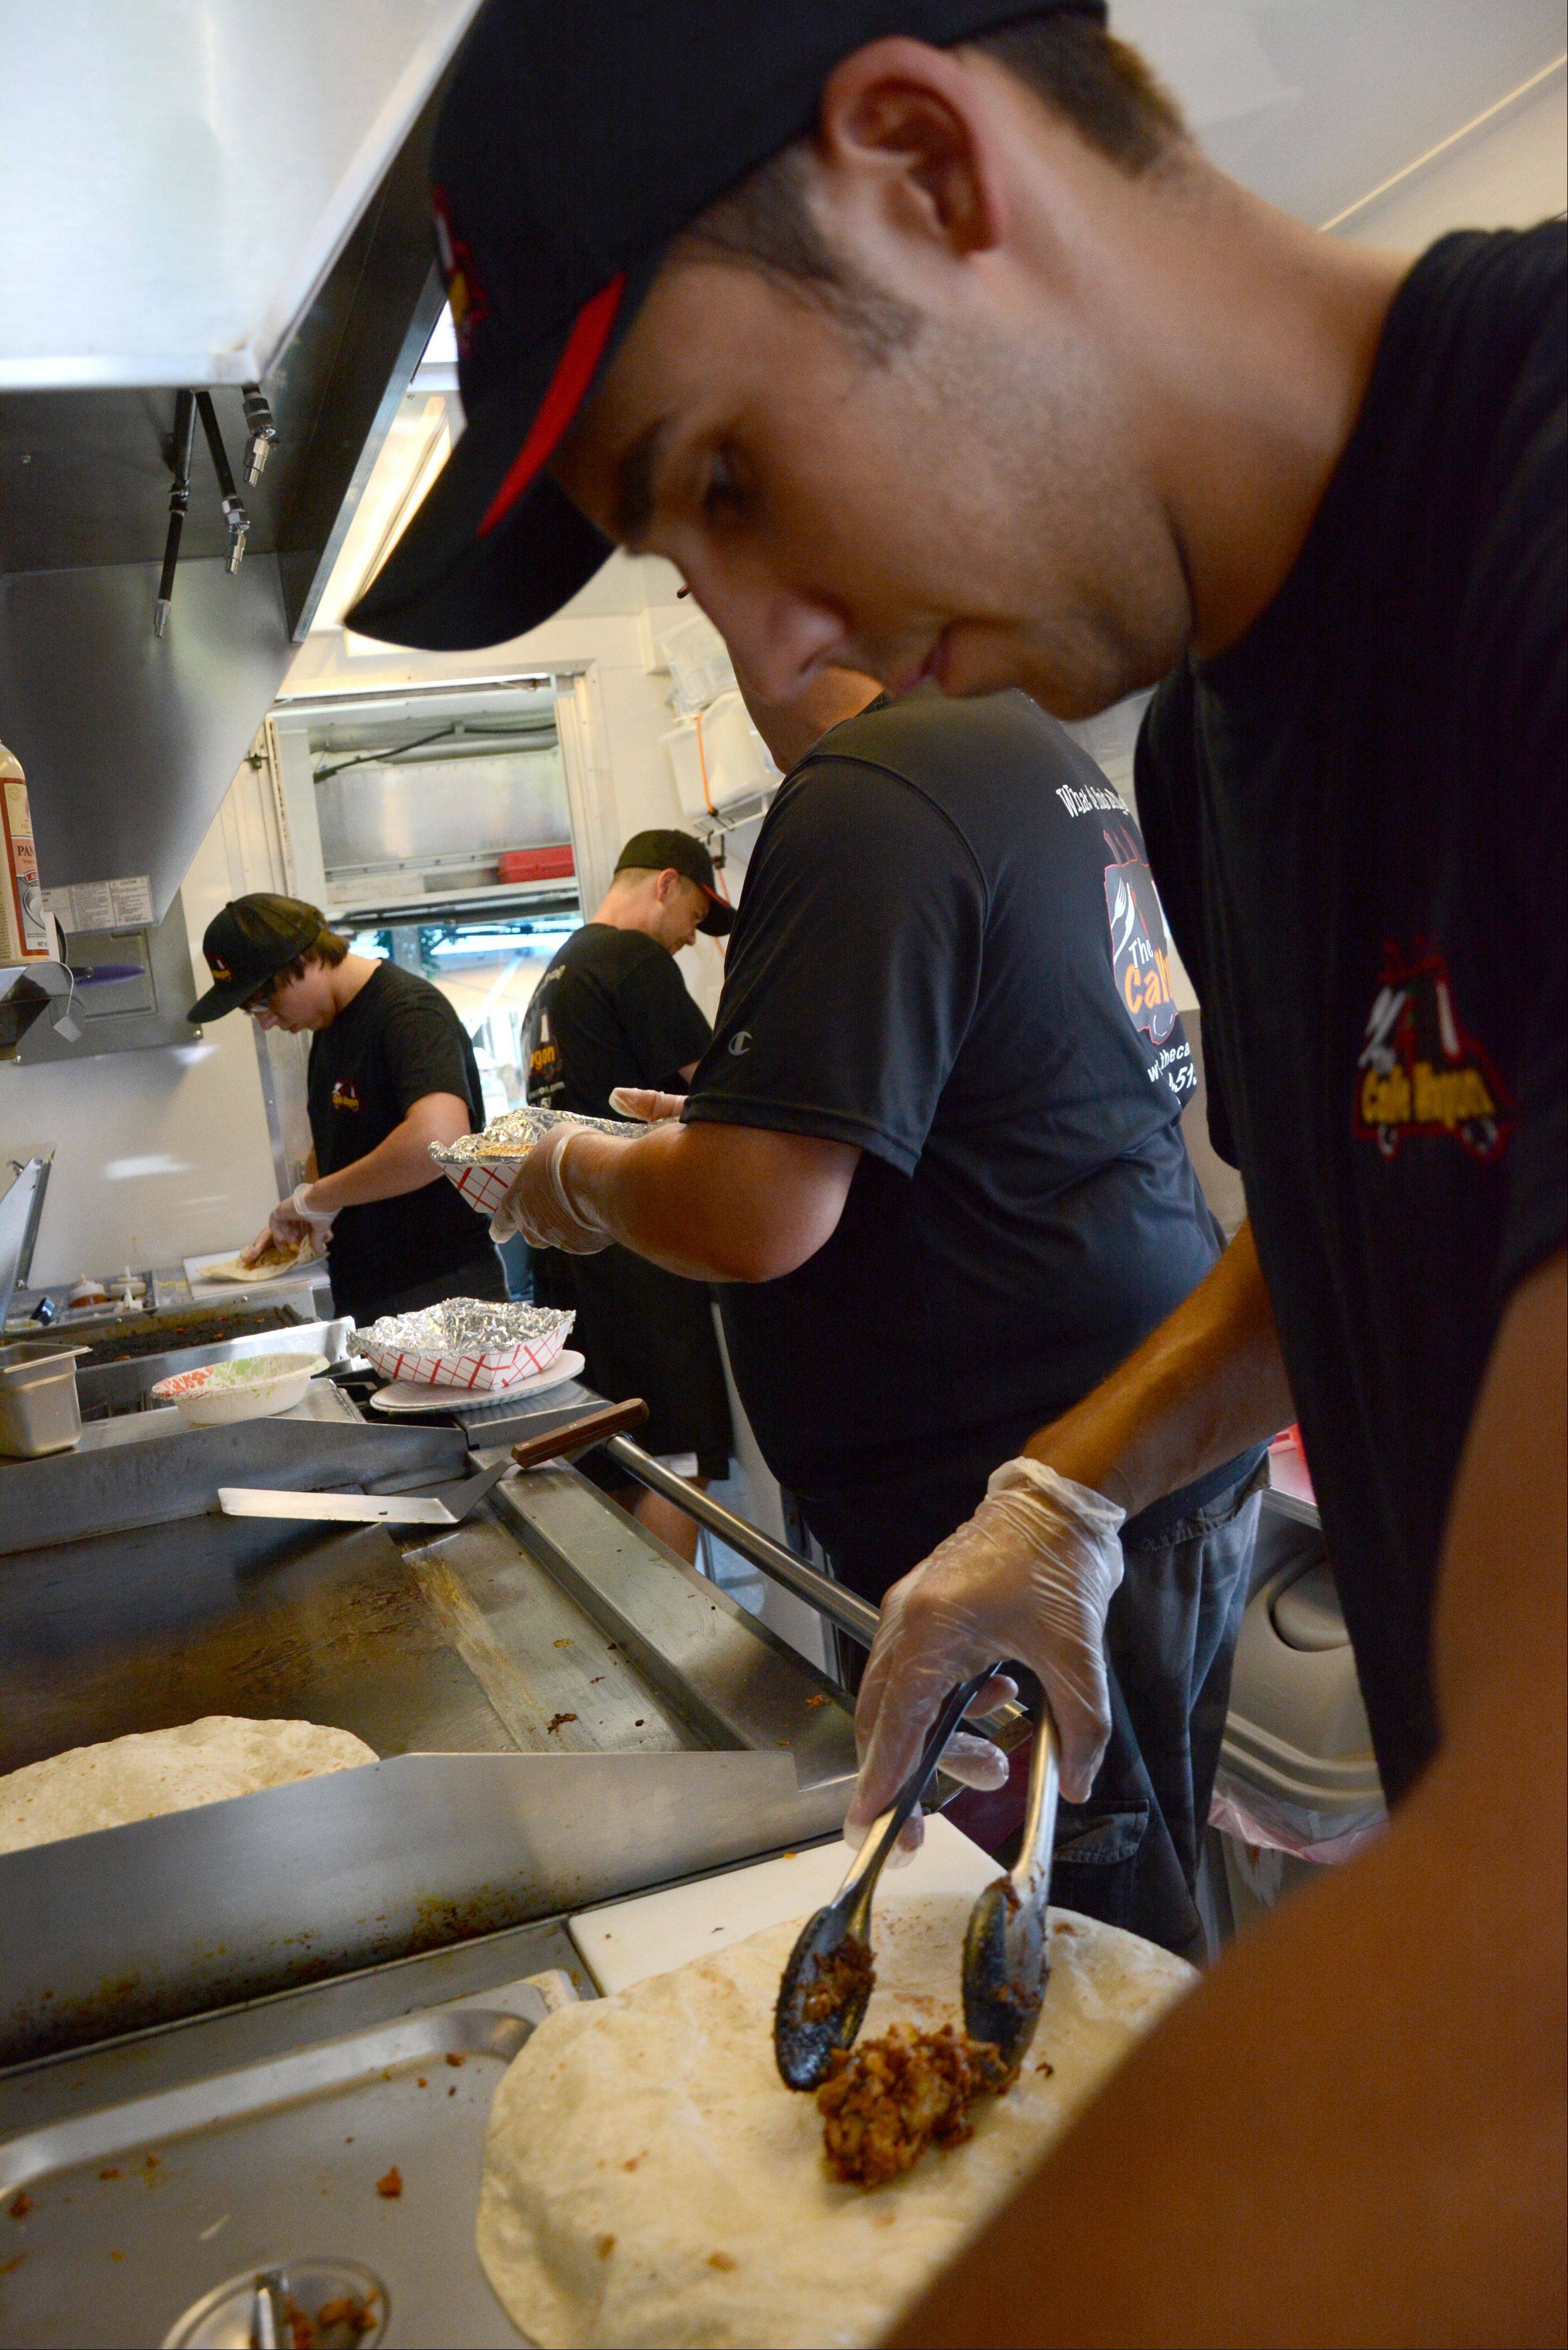 Ryan Oakes, of West Chicago, makes a burrito inside the Calle Wagon during the Food Truck Festival at Arlington Park on Saturday.